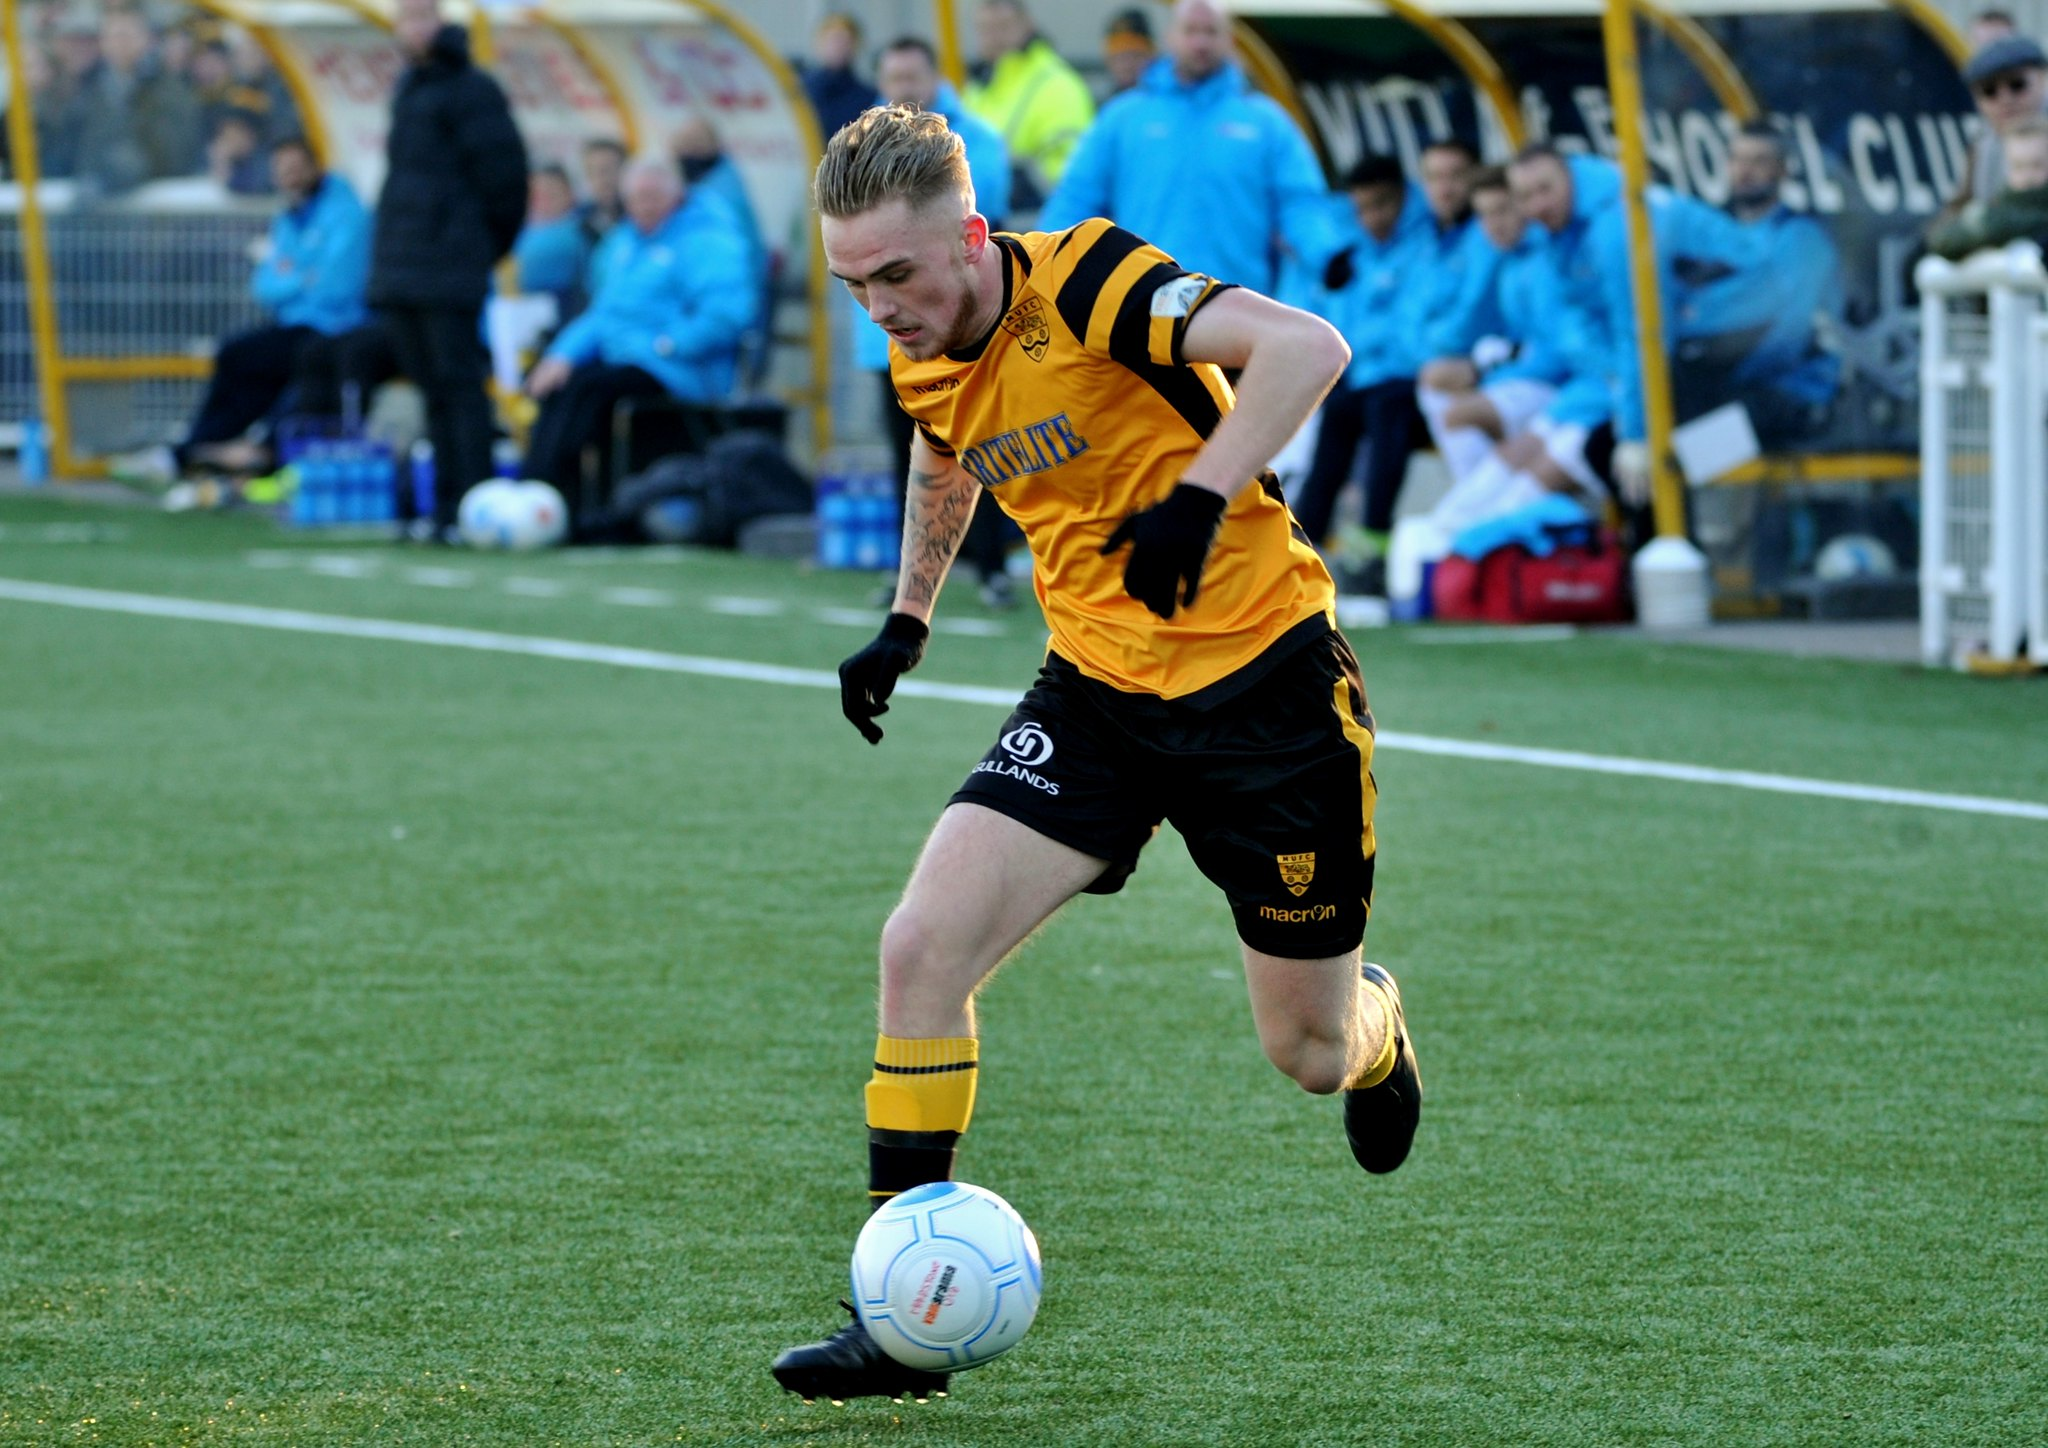 Maidstone United v Torquay United 120